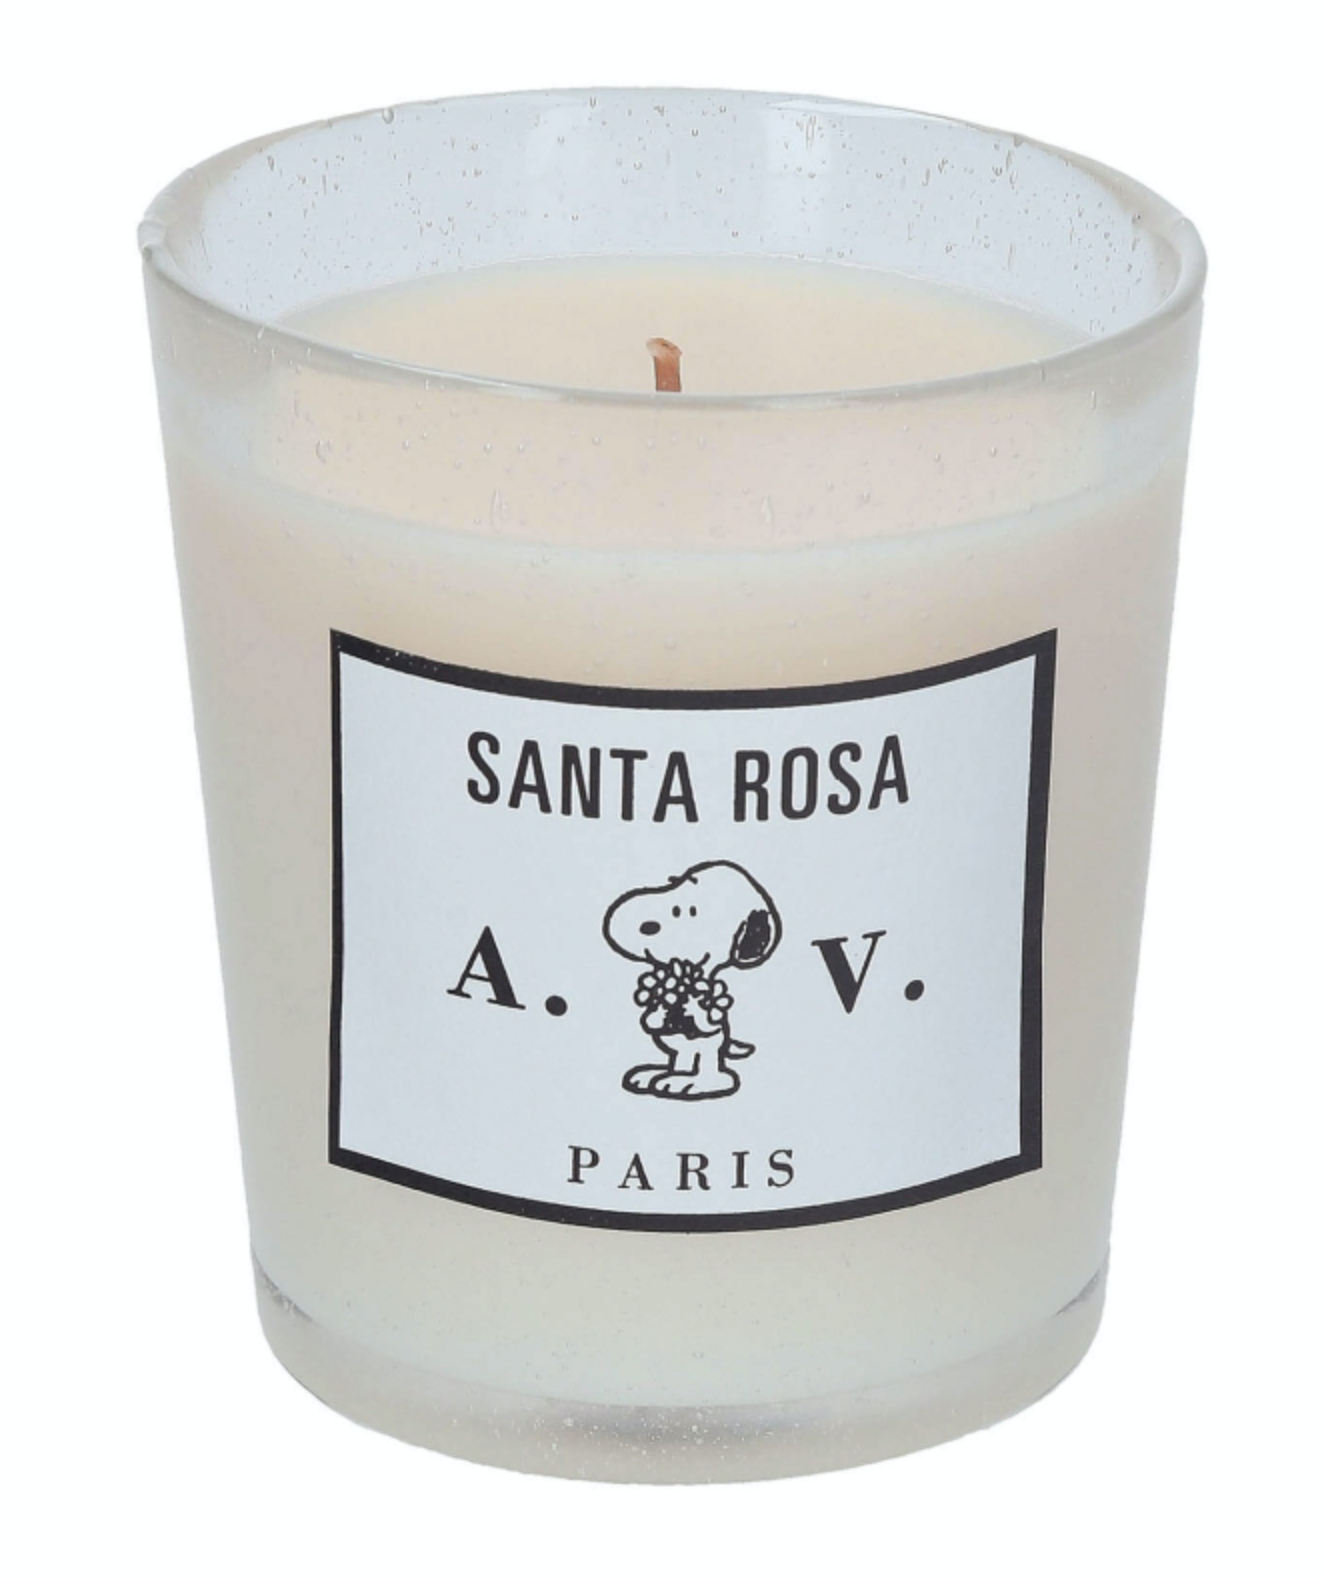 Santa Rosa scented candle